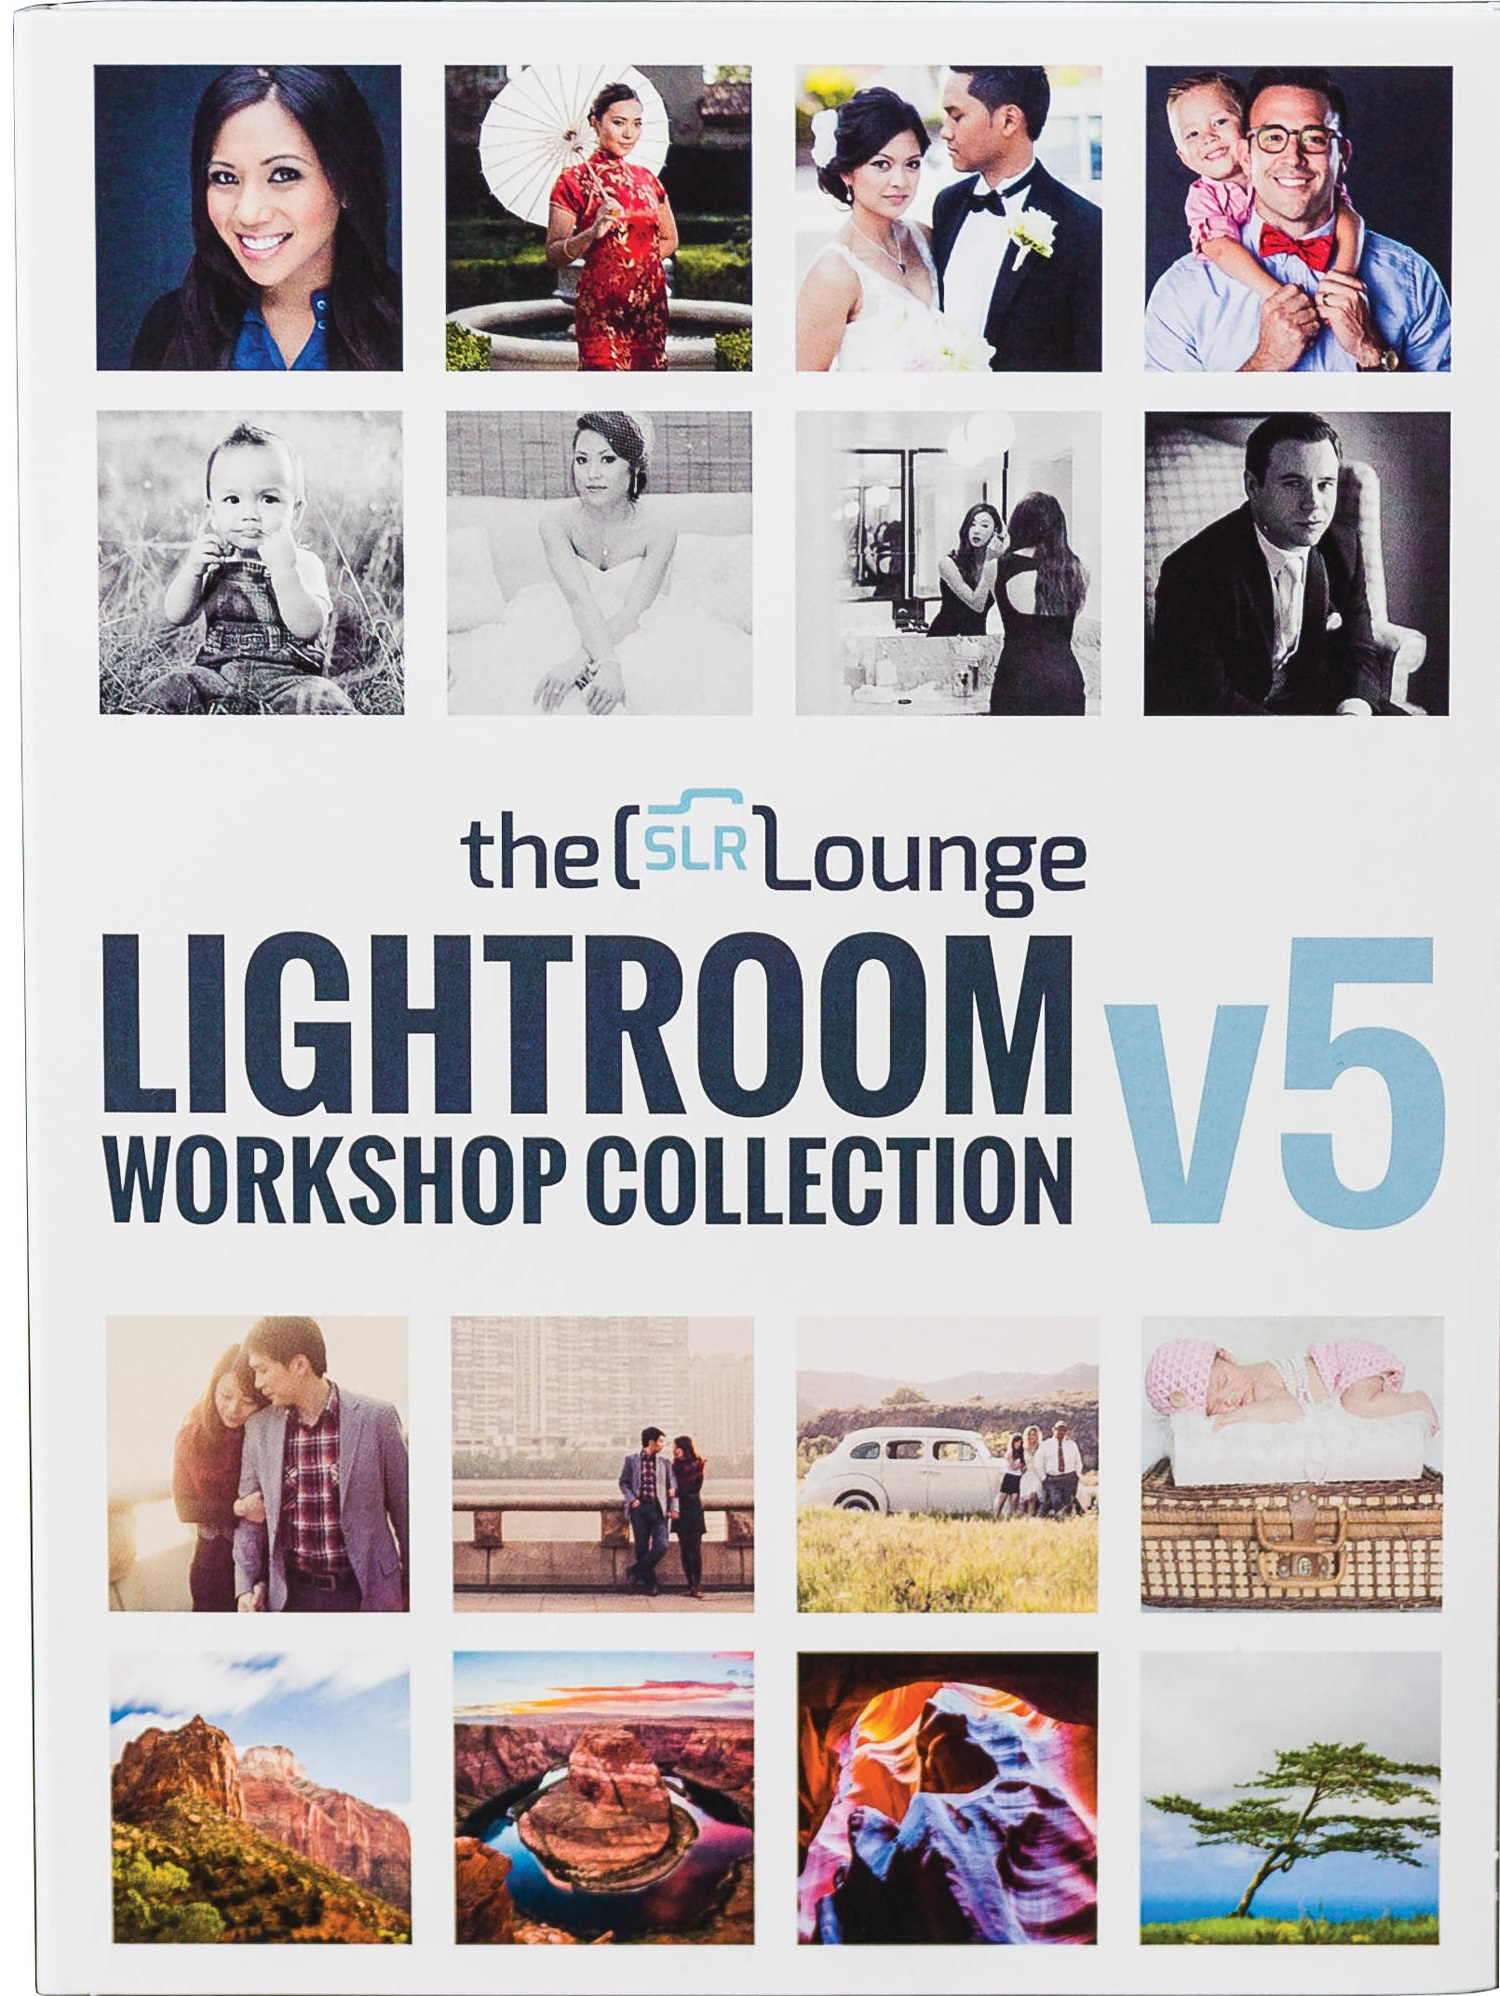 SLR Lounge Lightroom Workshop